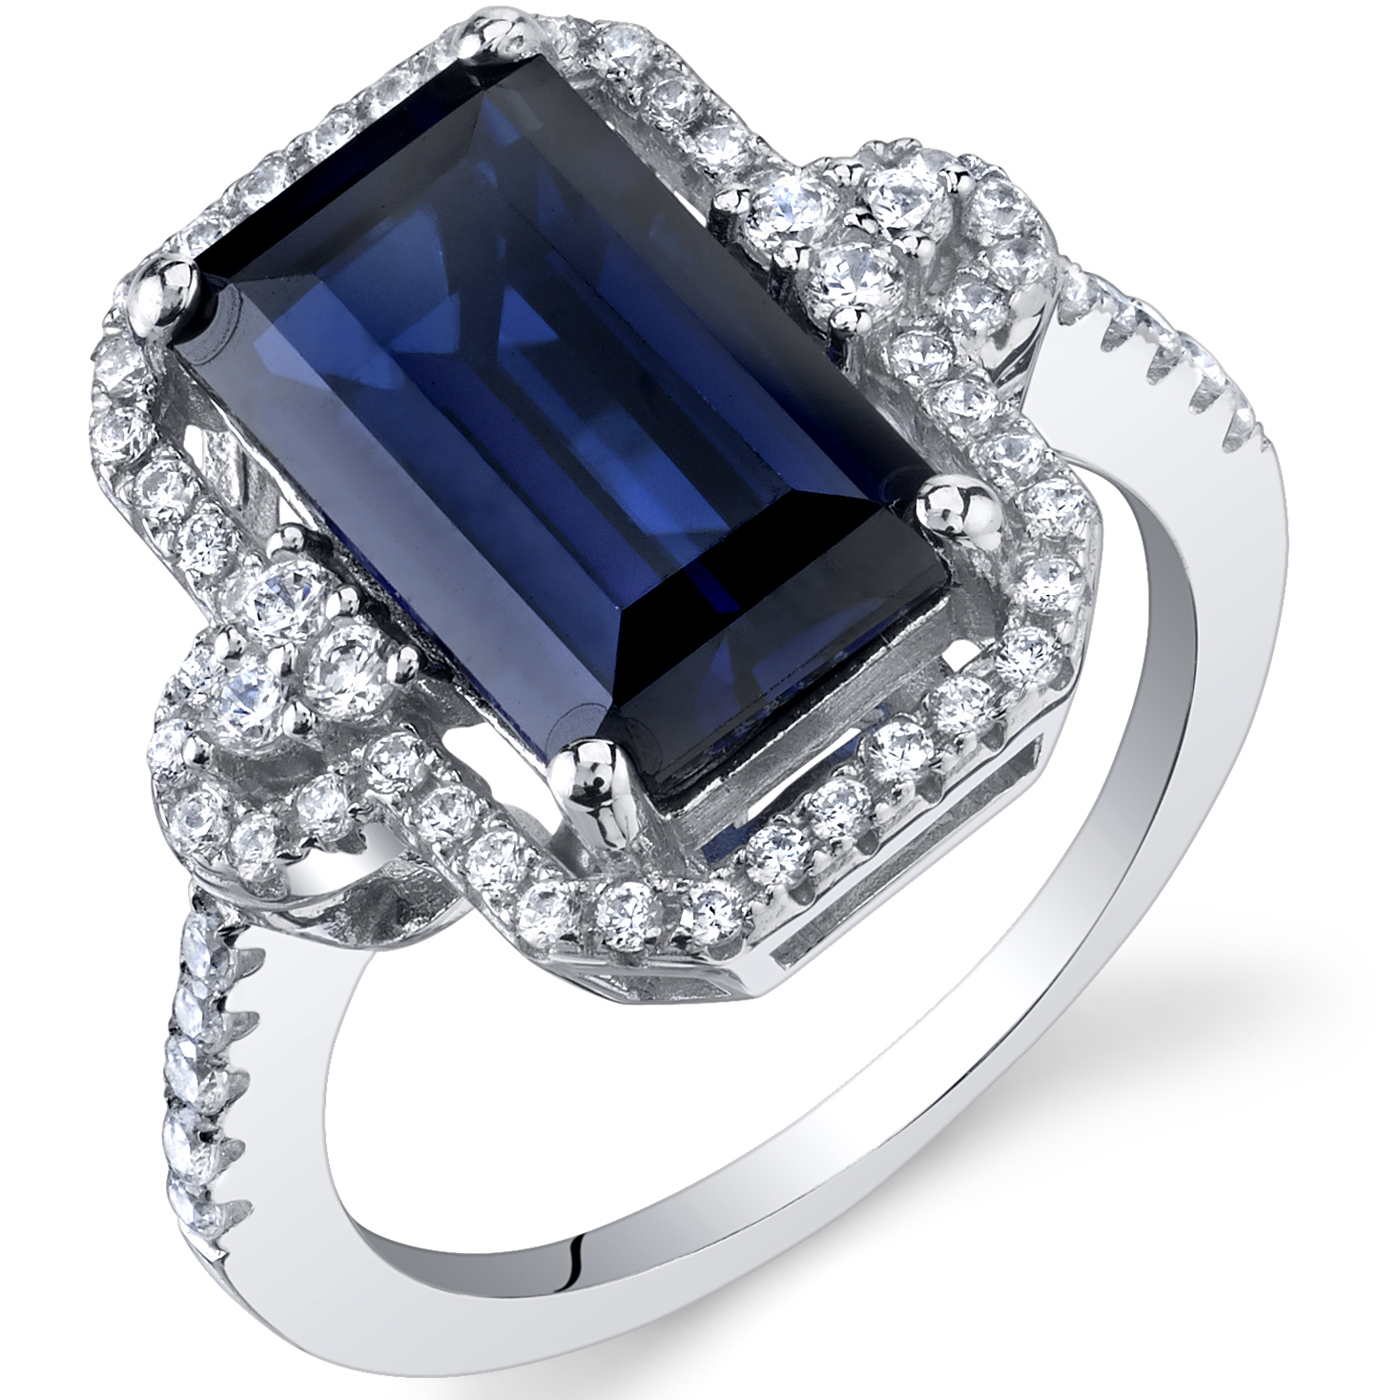 Peora 4.50 Ct Created Blue Sapphire Engagement Ring in Rhodium-Plated Sterling Silver